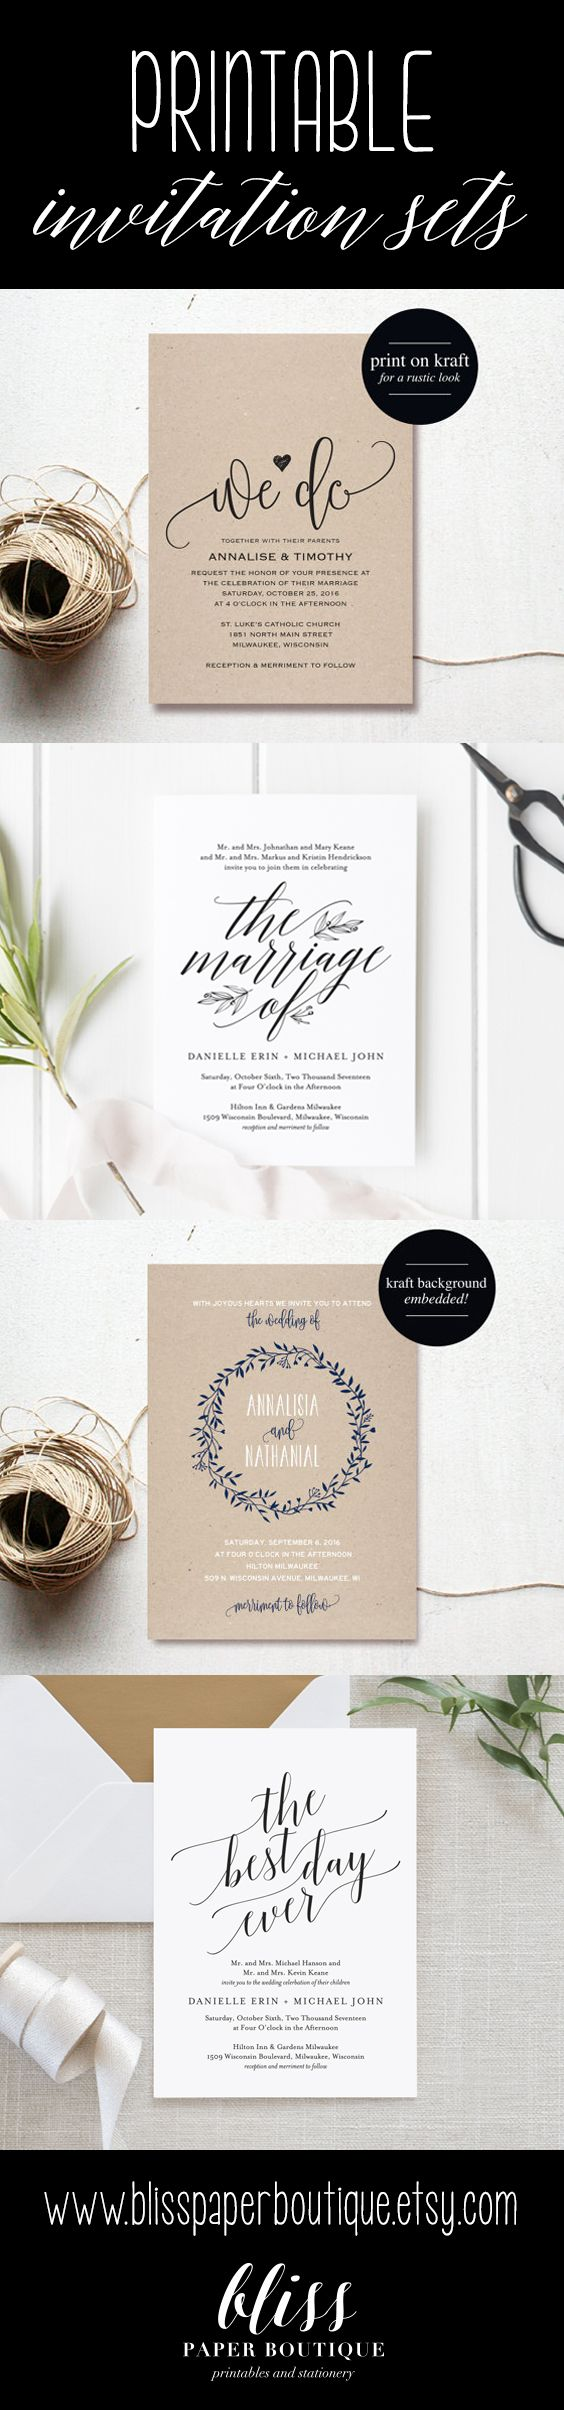 Beautiful rustic and elegant wedding invitations from Bliss Paper Boutique. Instantly download and edit your printable invitation set! After you are done customizing, print as many copies as you need. #weddinginvitation